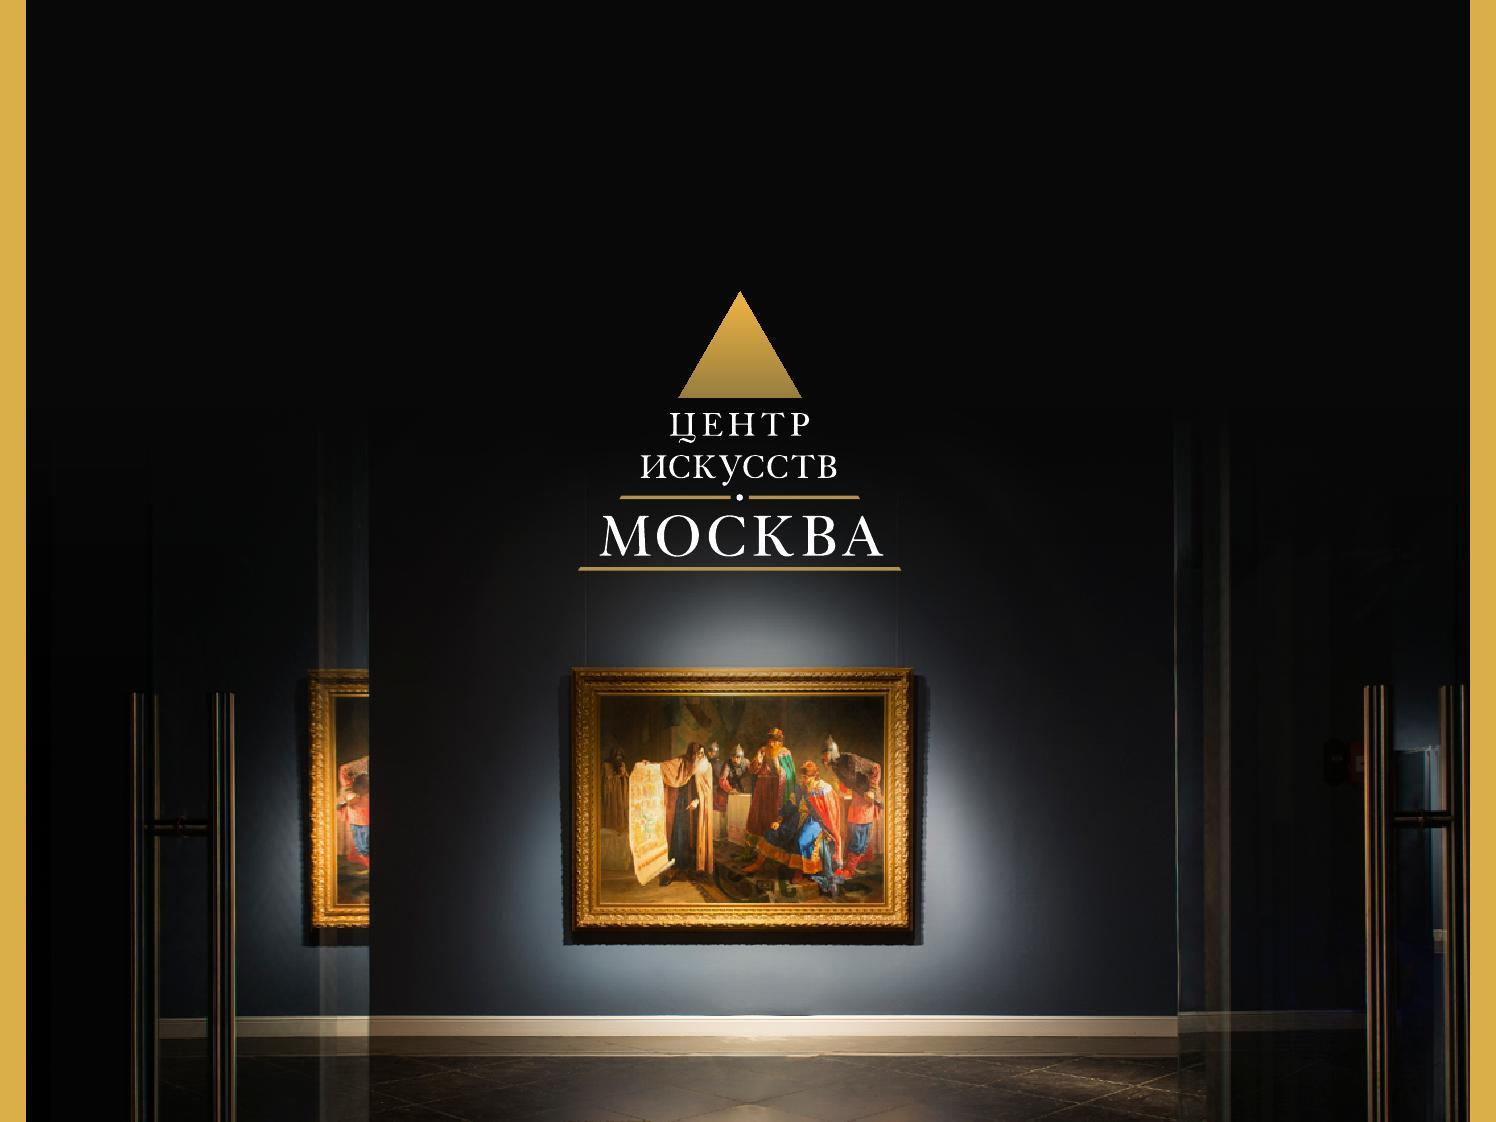 "<span style=""font-weight: bold;"">Центр искусств. Москва</span>"